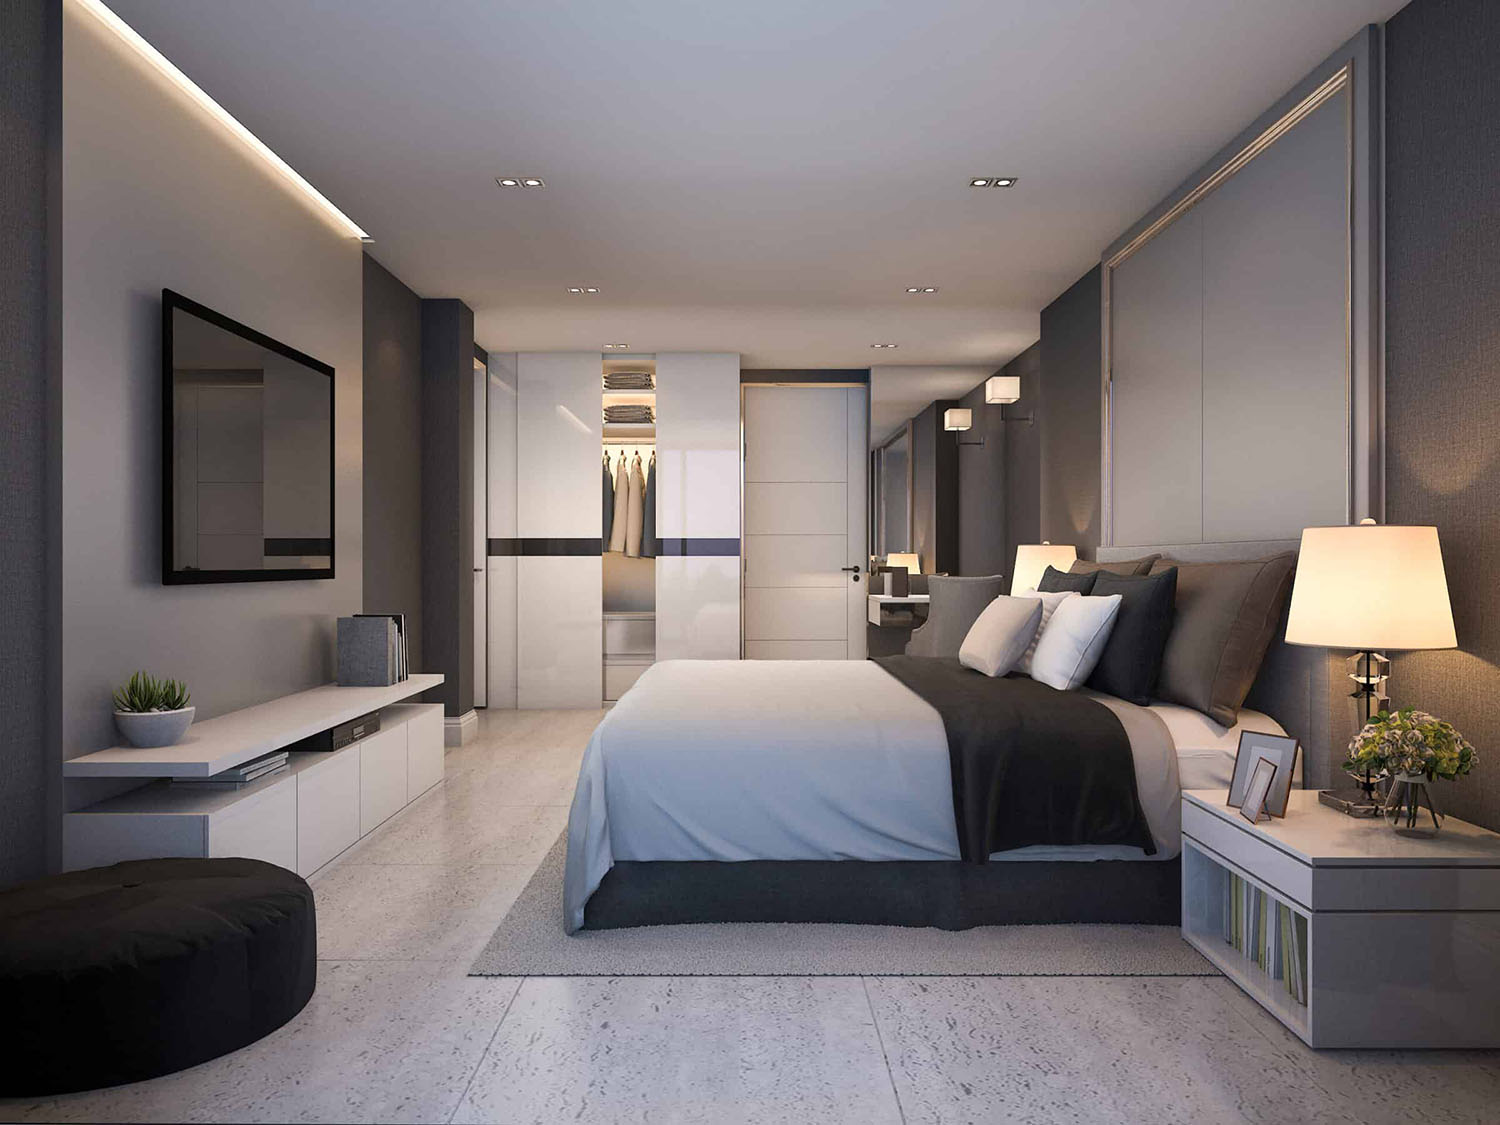 Who Sells Good Quality Bedroom Furniture?